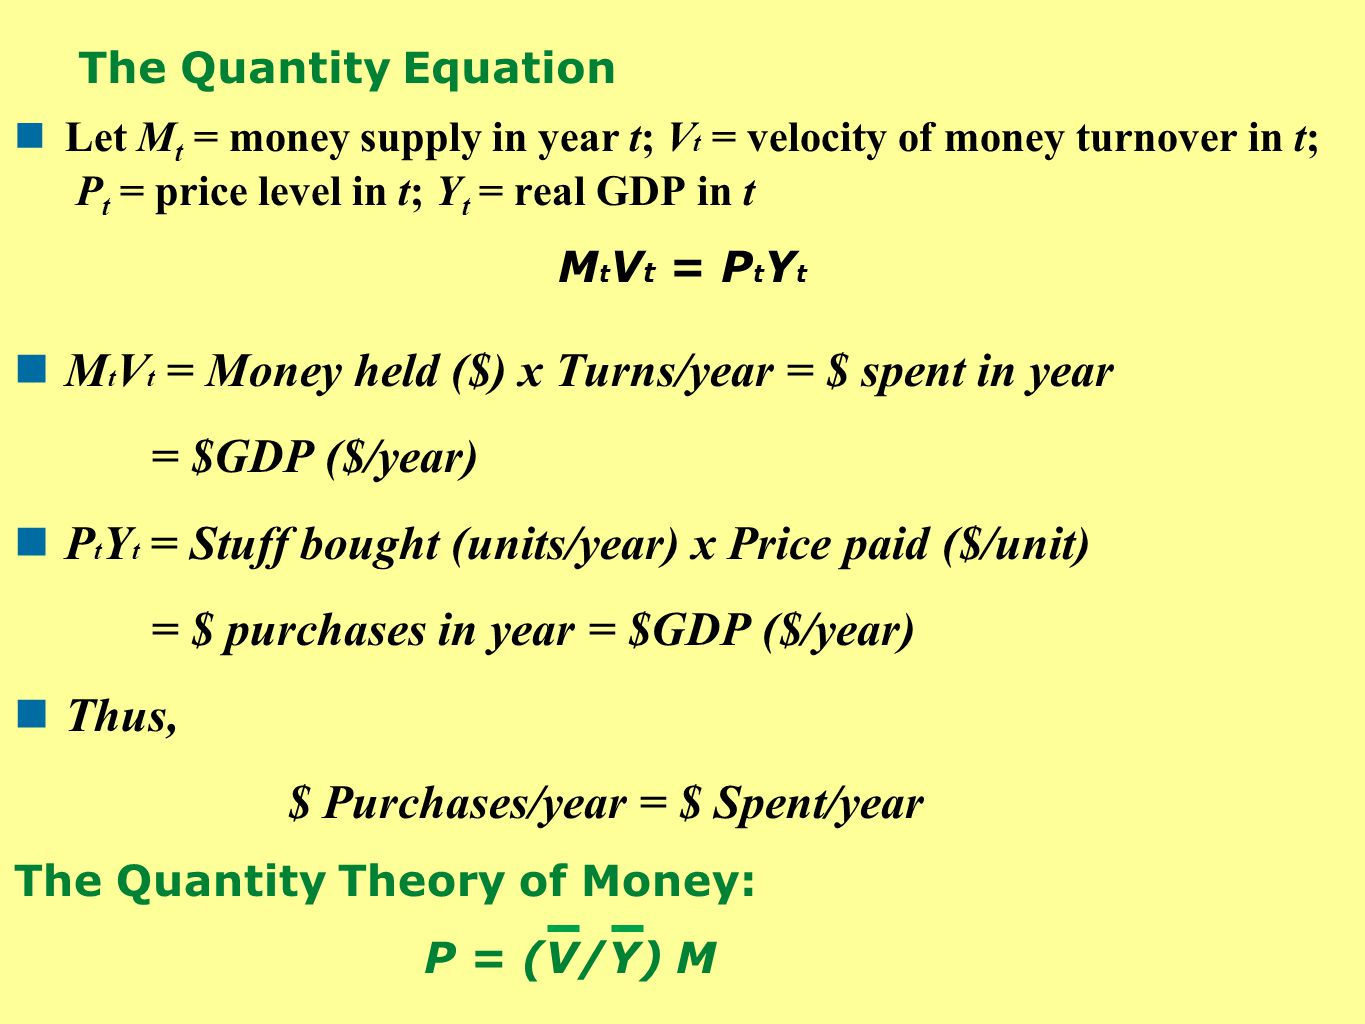 The Quantity Equation Let M t = money supply in year t; V t = velocity of money turnover in t; P t = price level in t; Y t = real GDP in t M t V t = P t Y t M t V t = Money held ($) x Turns/year = $ spent in year = $GDP ($/year) P t Y t = Stuff bought (units/year) x Price paid ($/unit) = $ purchases in year = $GDP ($/year) Thus, $ Purchases/year = $ Spent/year The Quantity Theory of Money: P = (V/Y) M